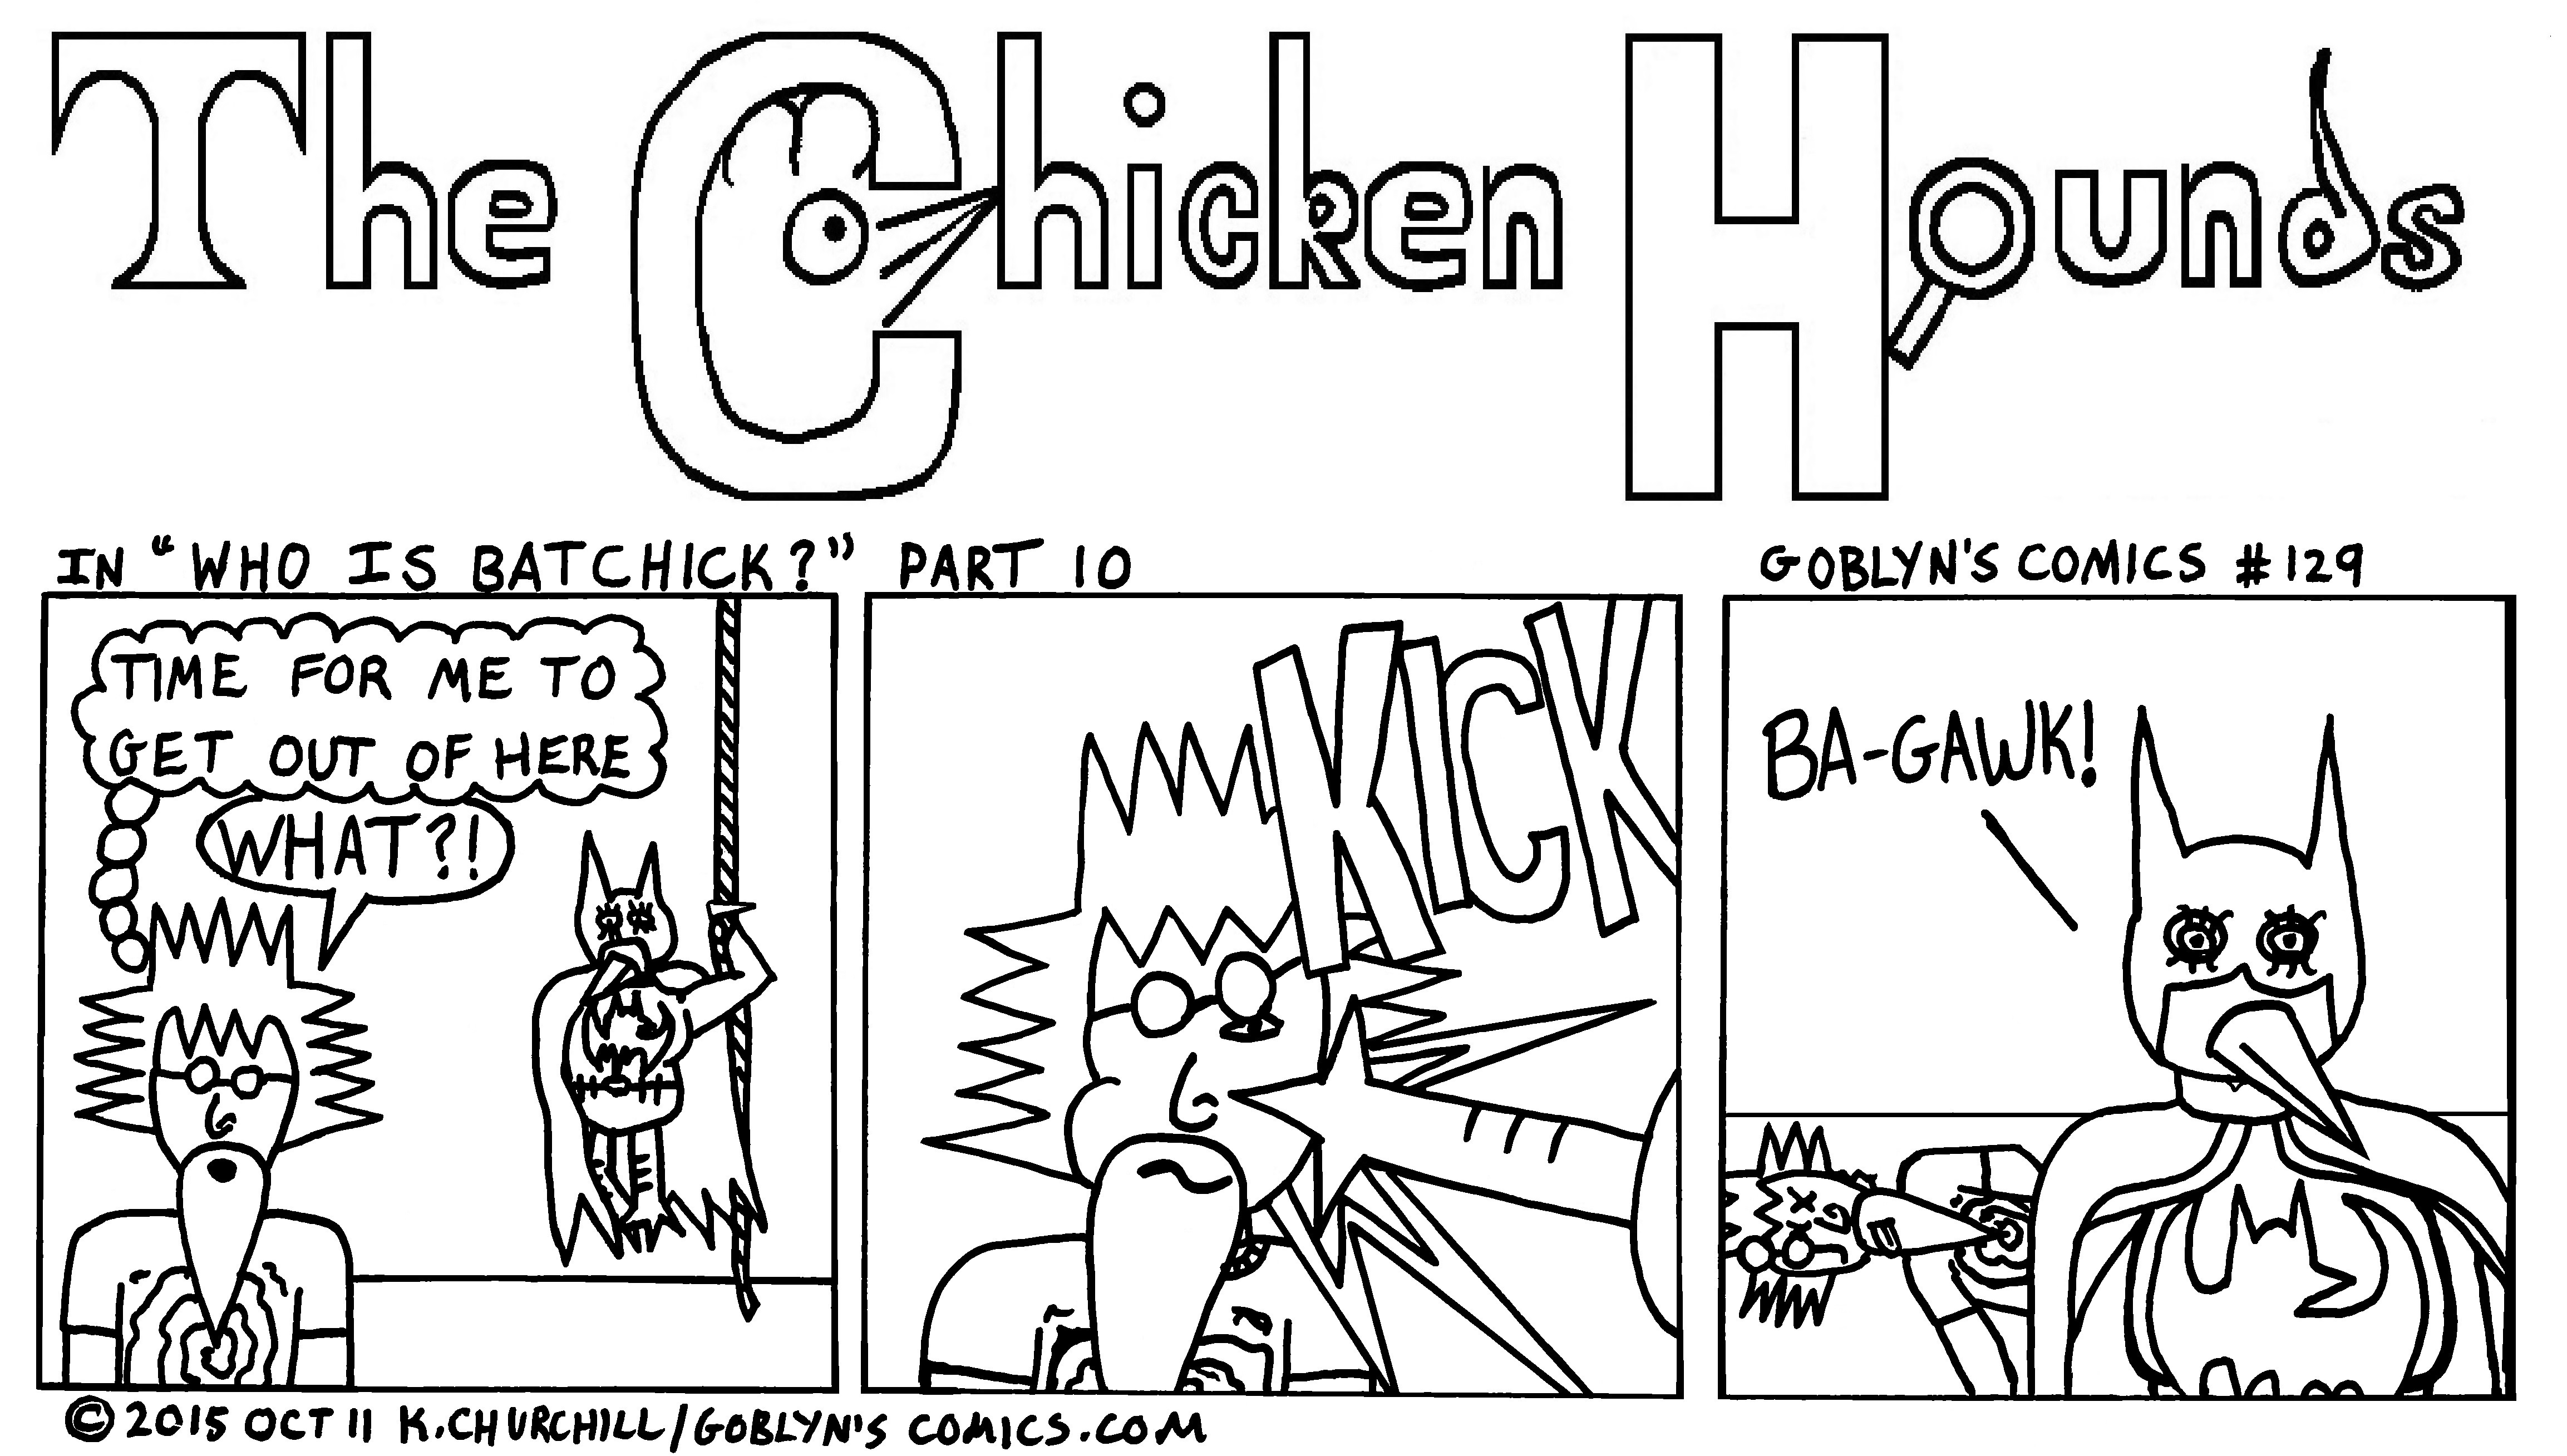 Chicken Hounds: Who Is BatChick?